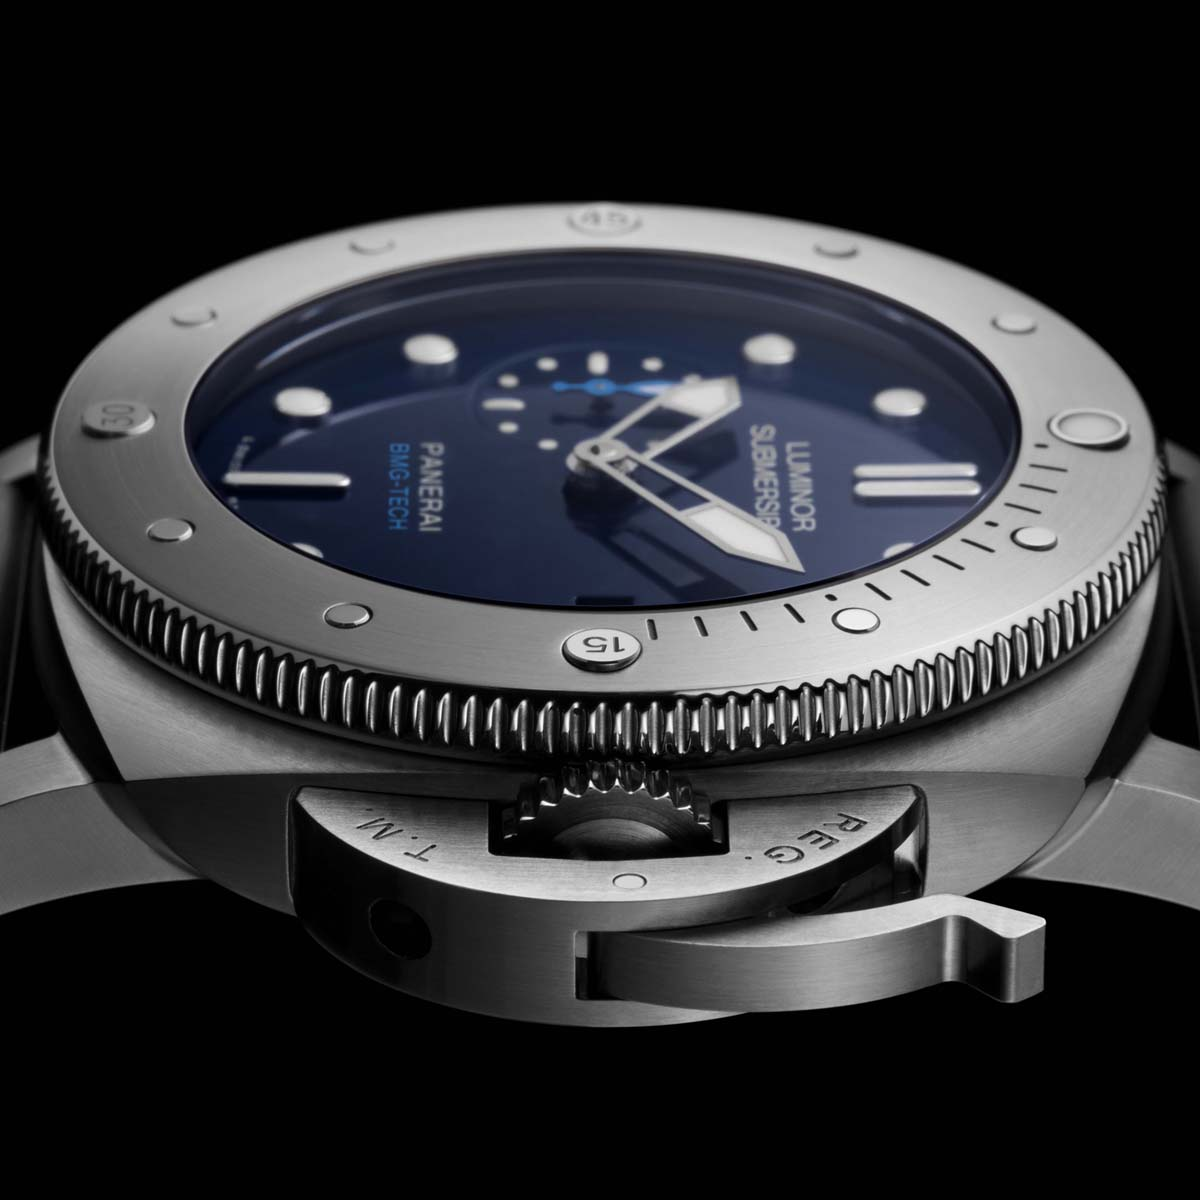 La Cote des Montres : Photo - Panerai Luminor Submersible 1950 BMG-Tech™ 3 Days Automatic – 47mm